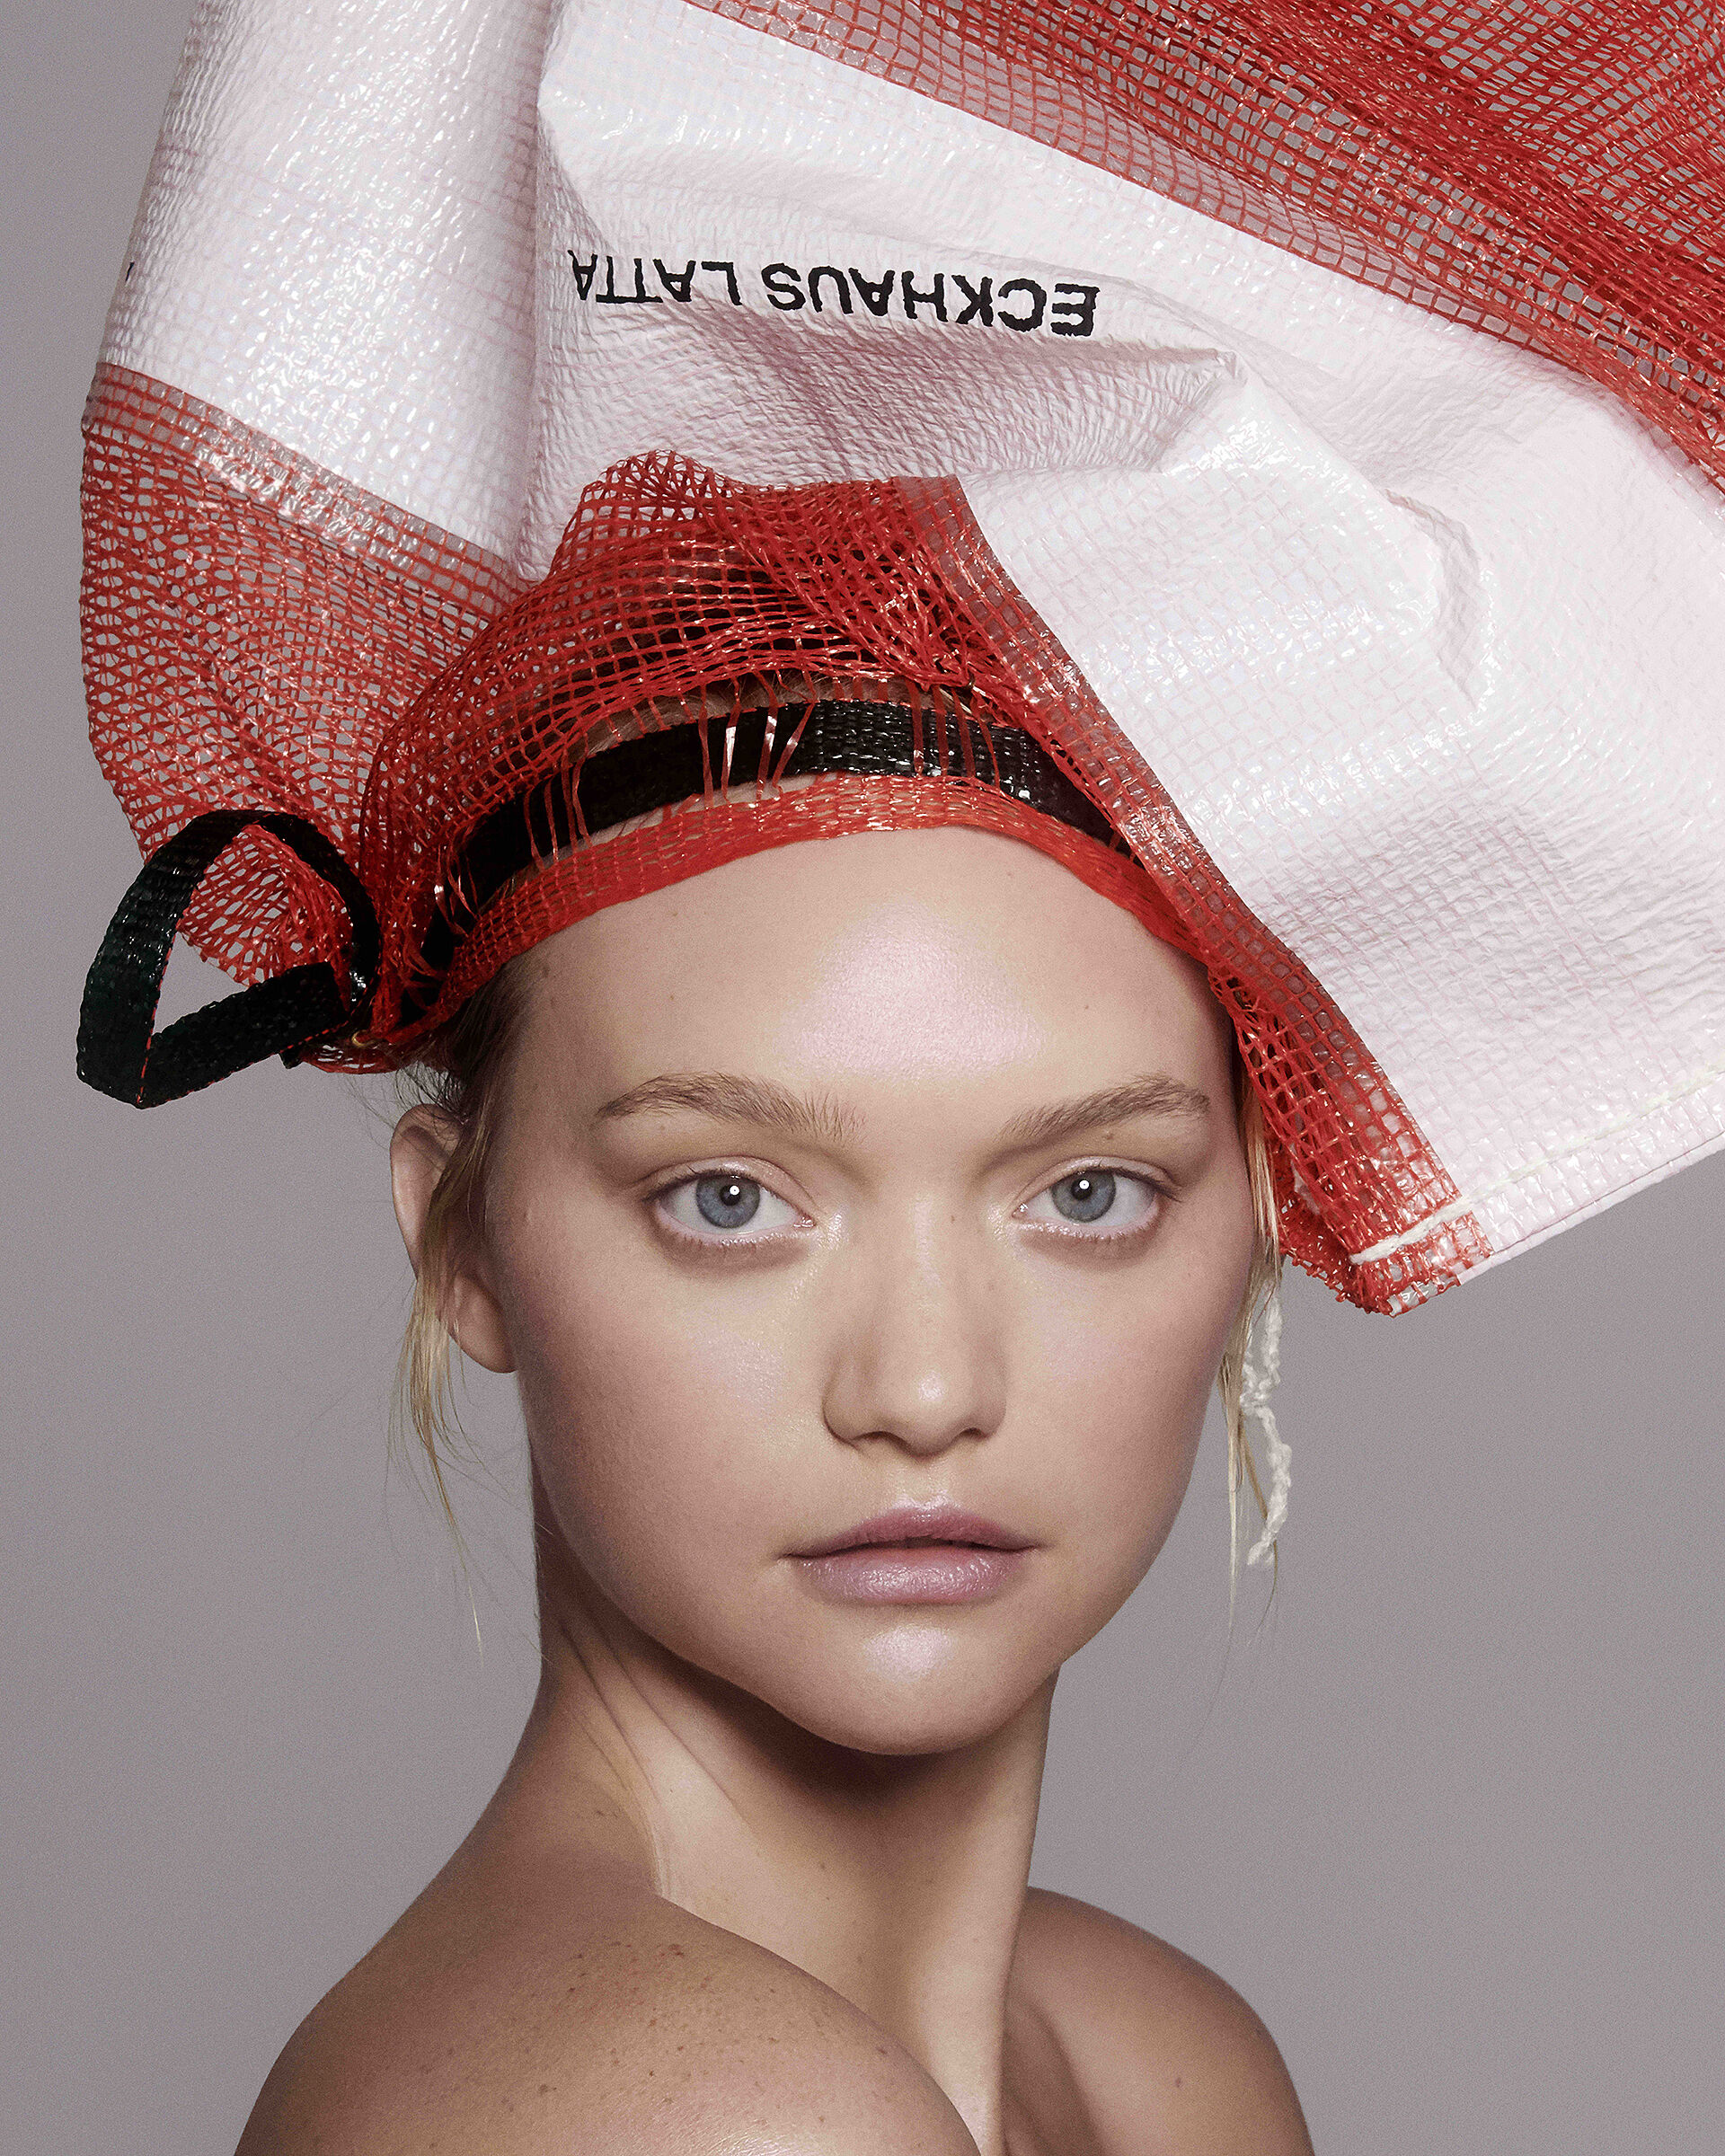 A model with a bag on her head.